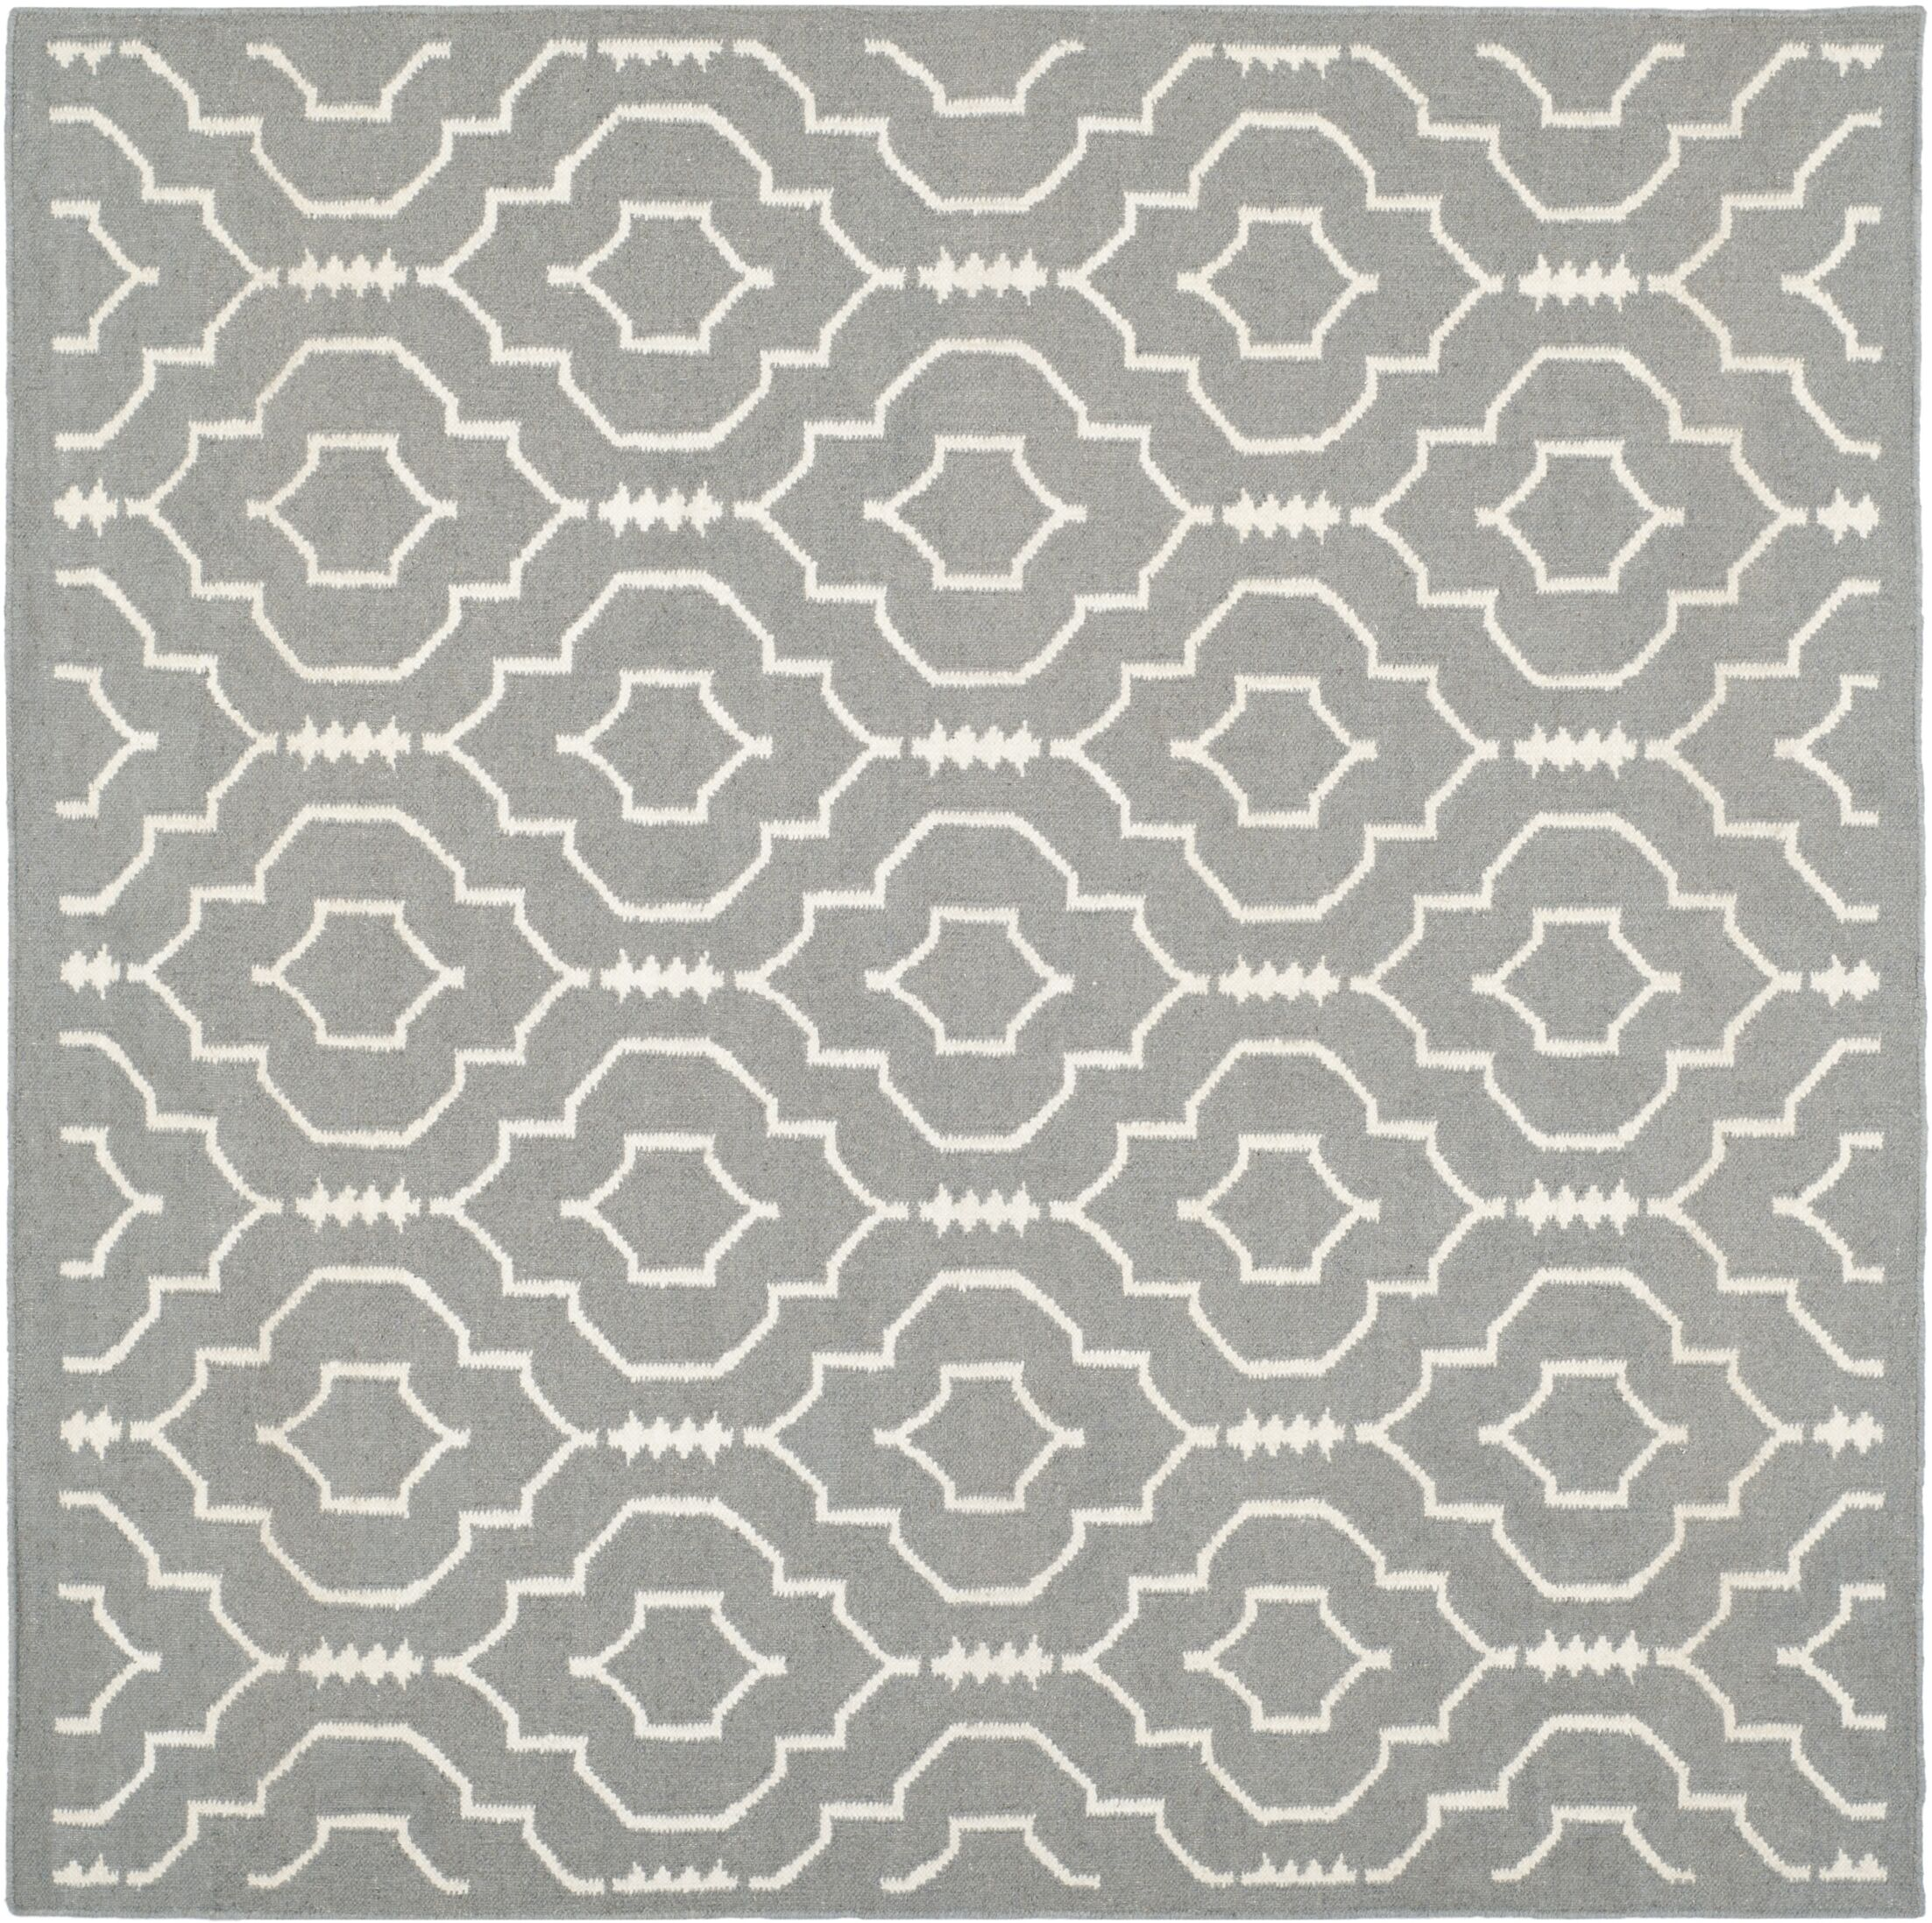 Crawford Hand-Woven Gray/Ivory Area Rug Rug Size: Square 6'